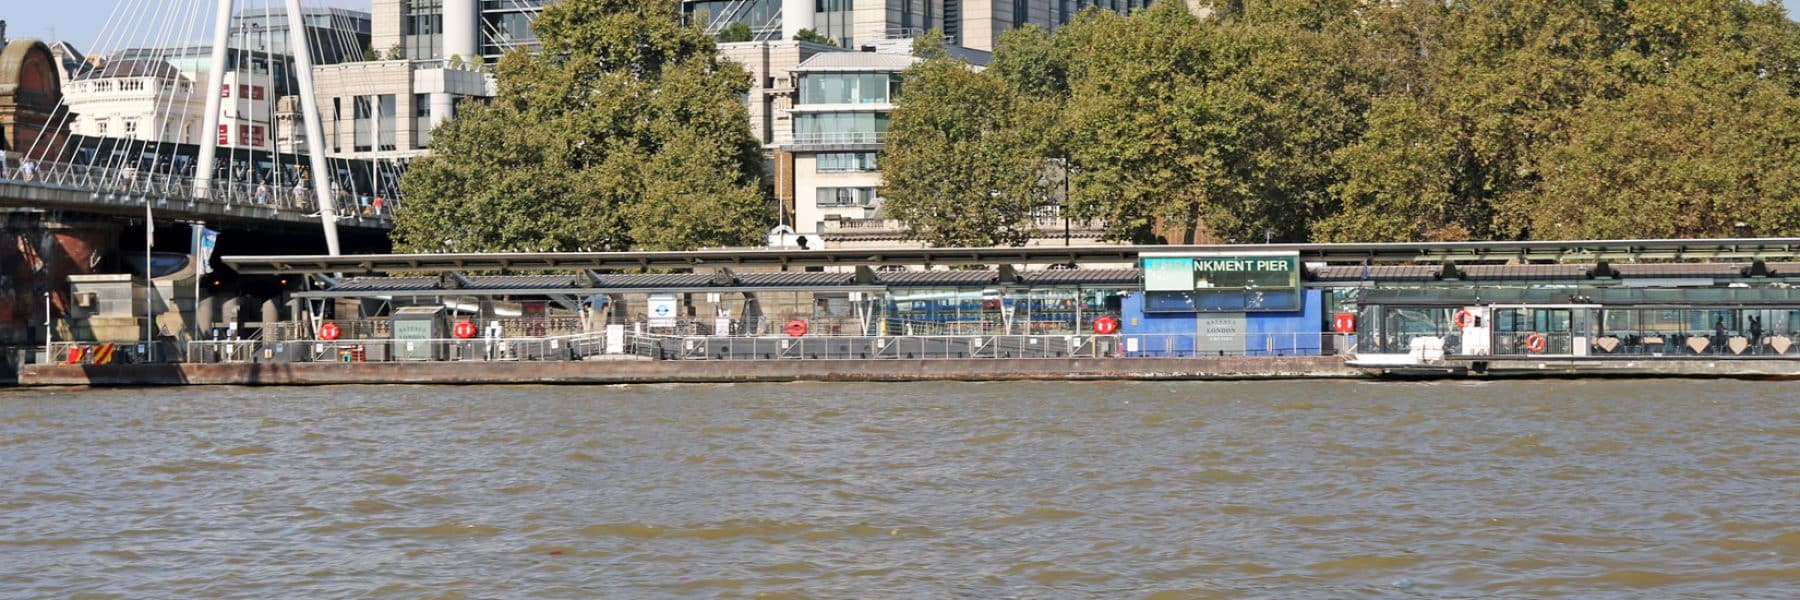 Embankment Pier